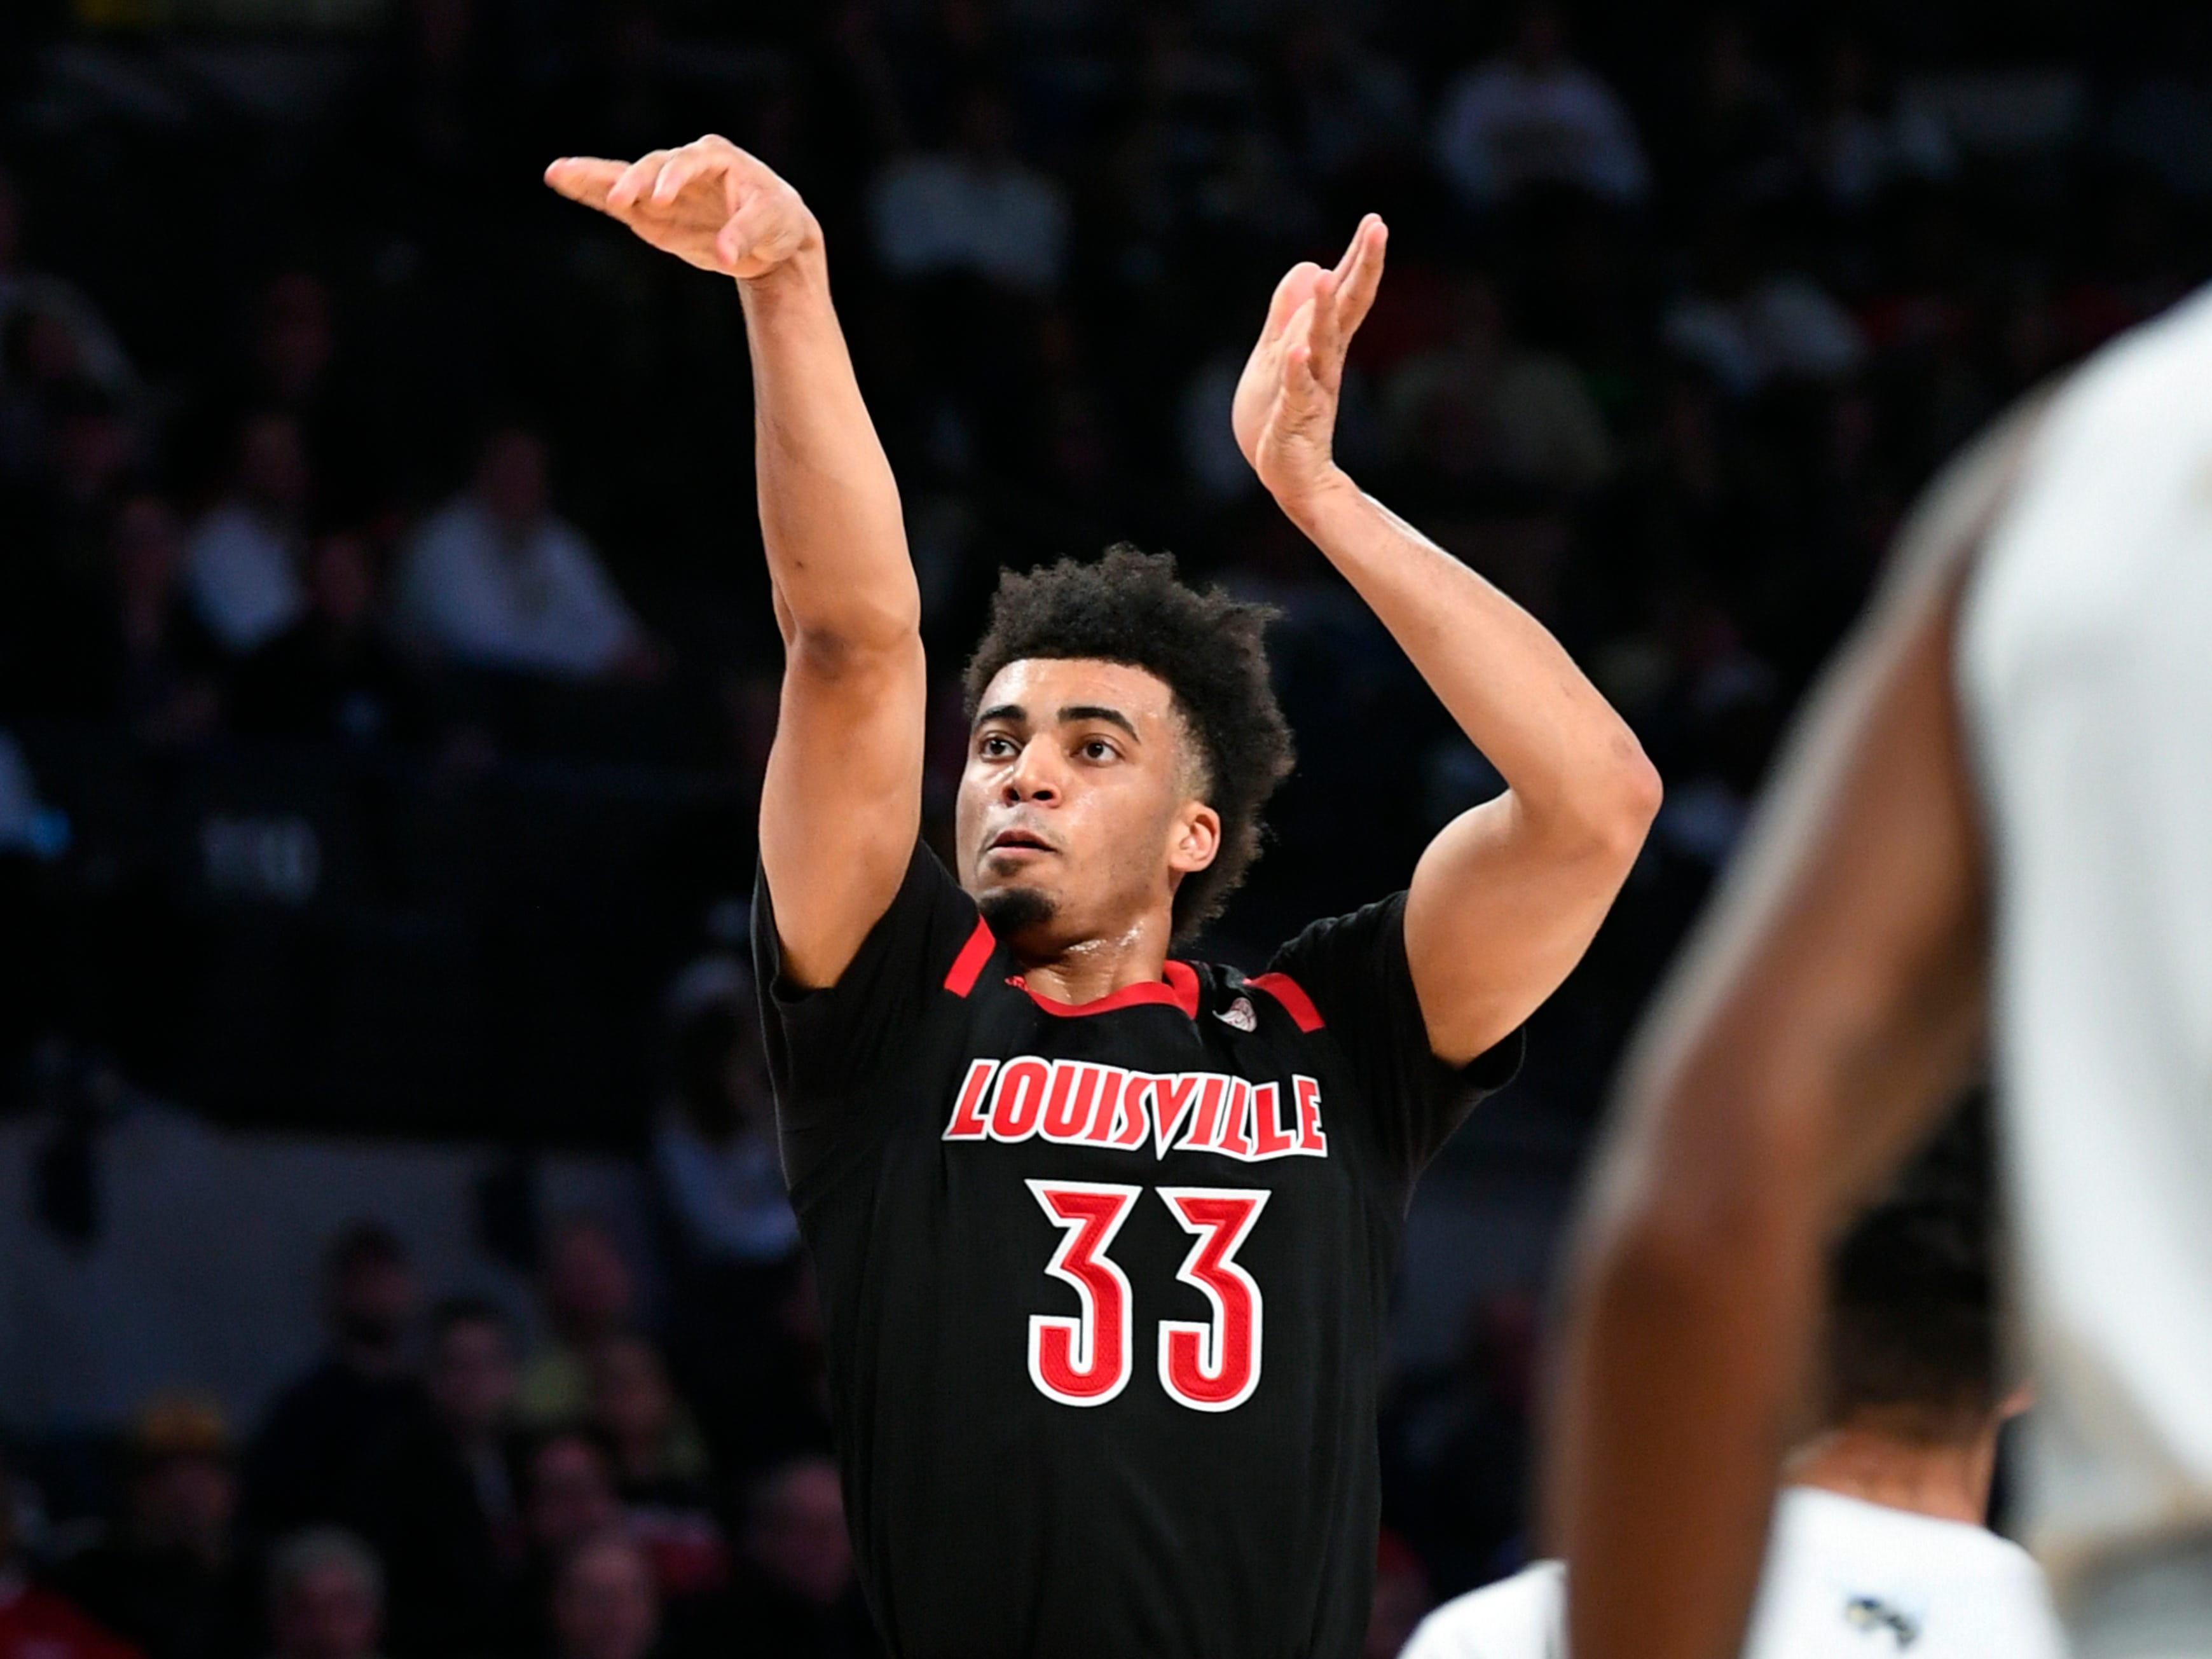 Louisville forward Jordan Nwora shoots against Georgia Tech during the first half of an NCAA college basketball game Saturday, Jan. 19, 2019, in Atlanta.